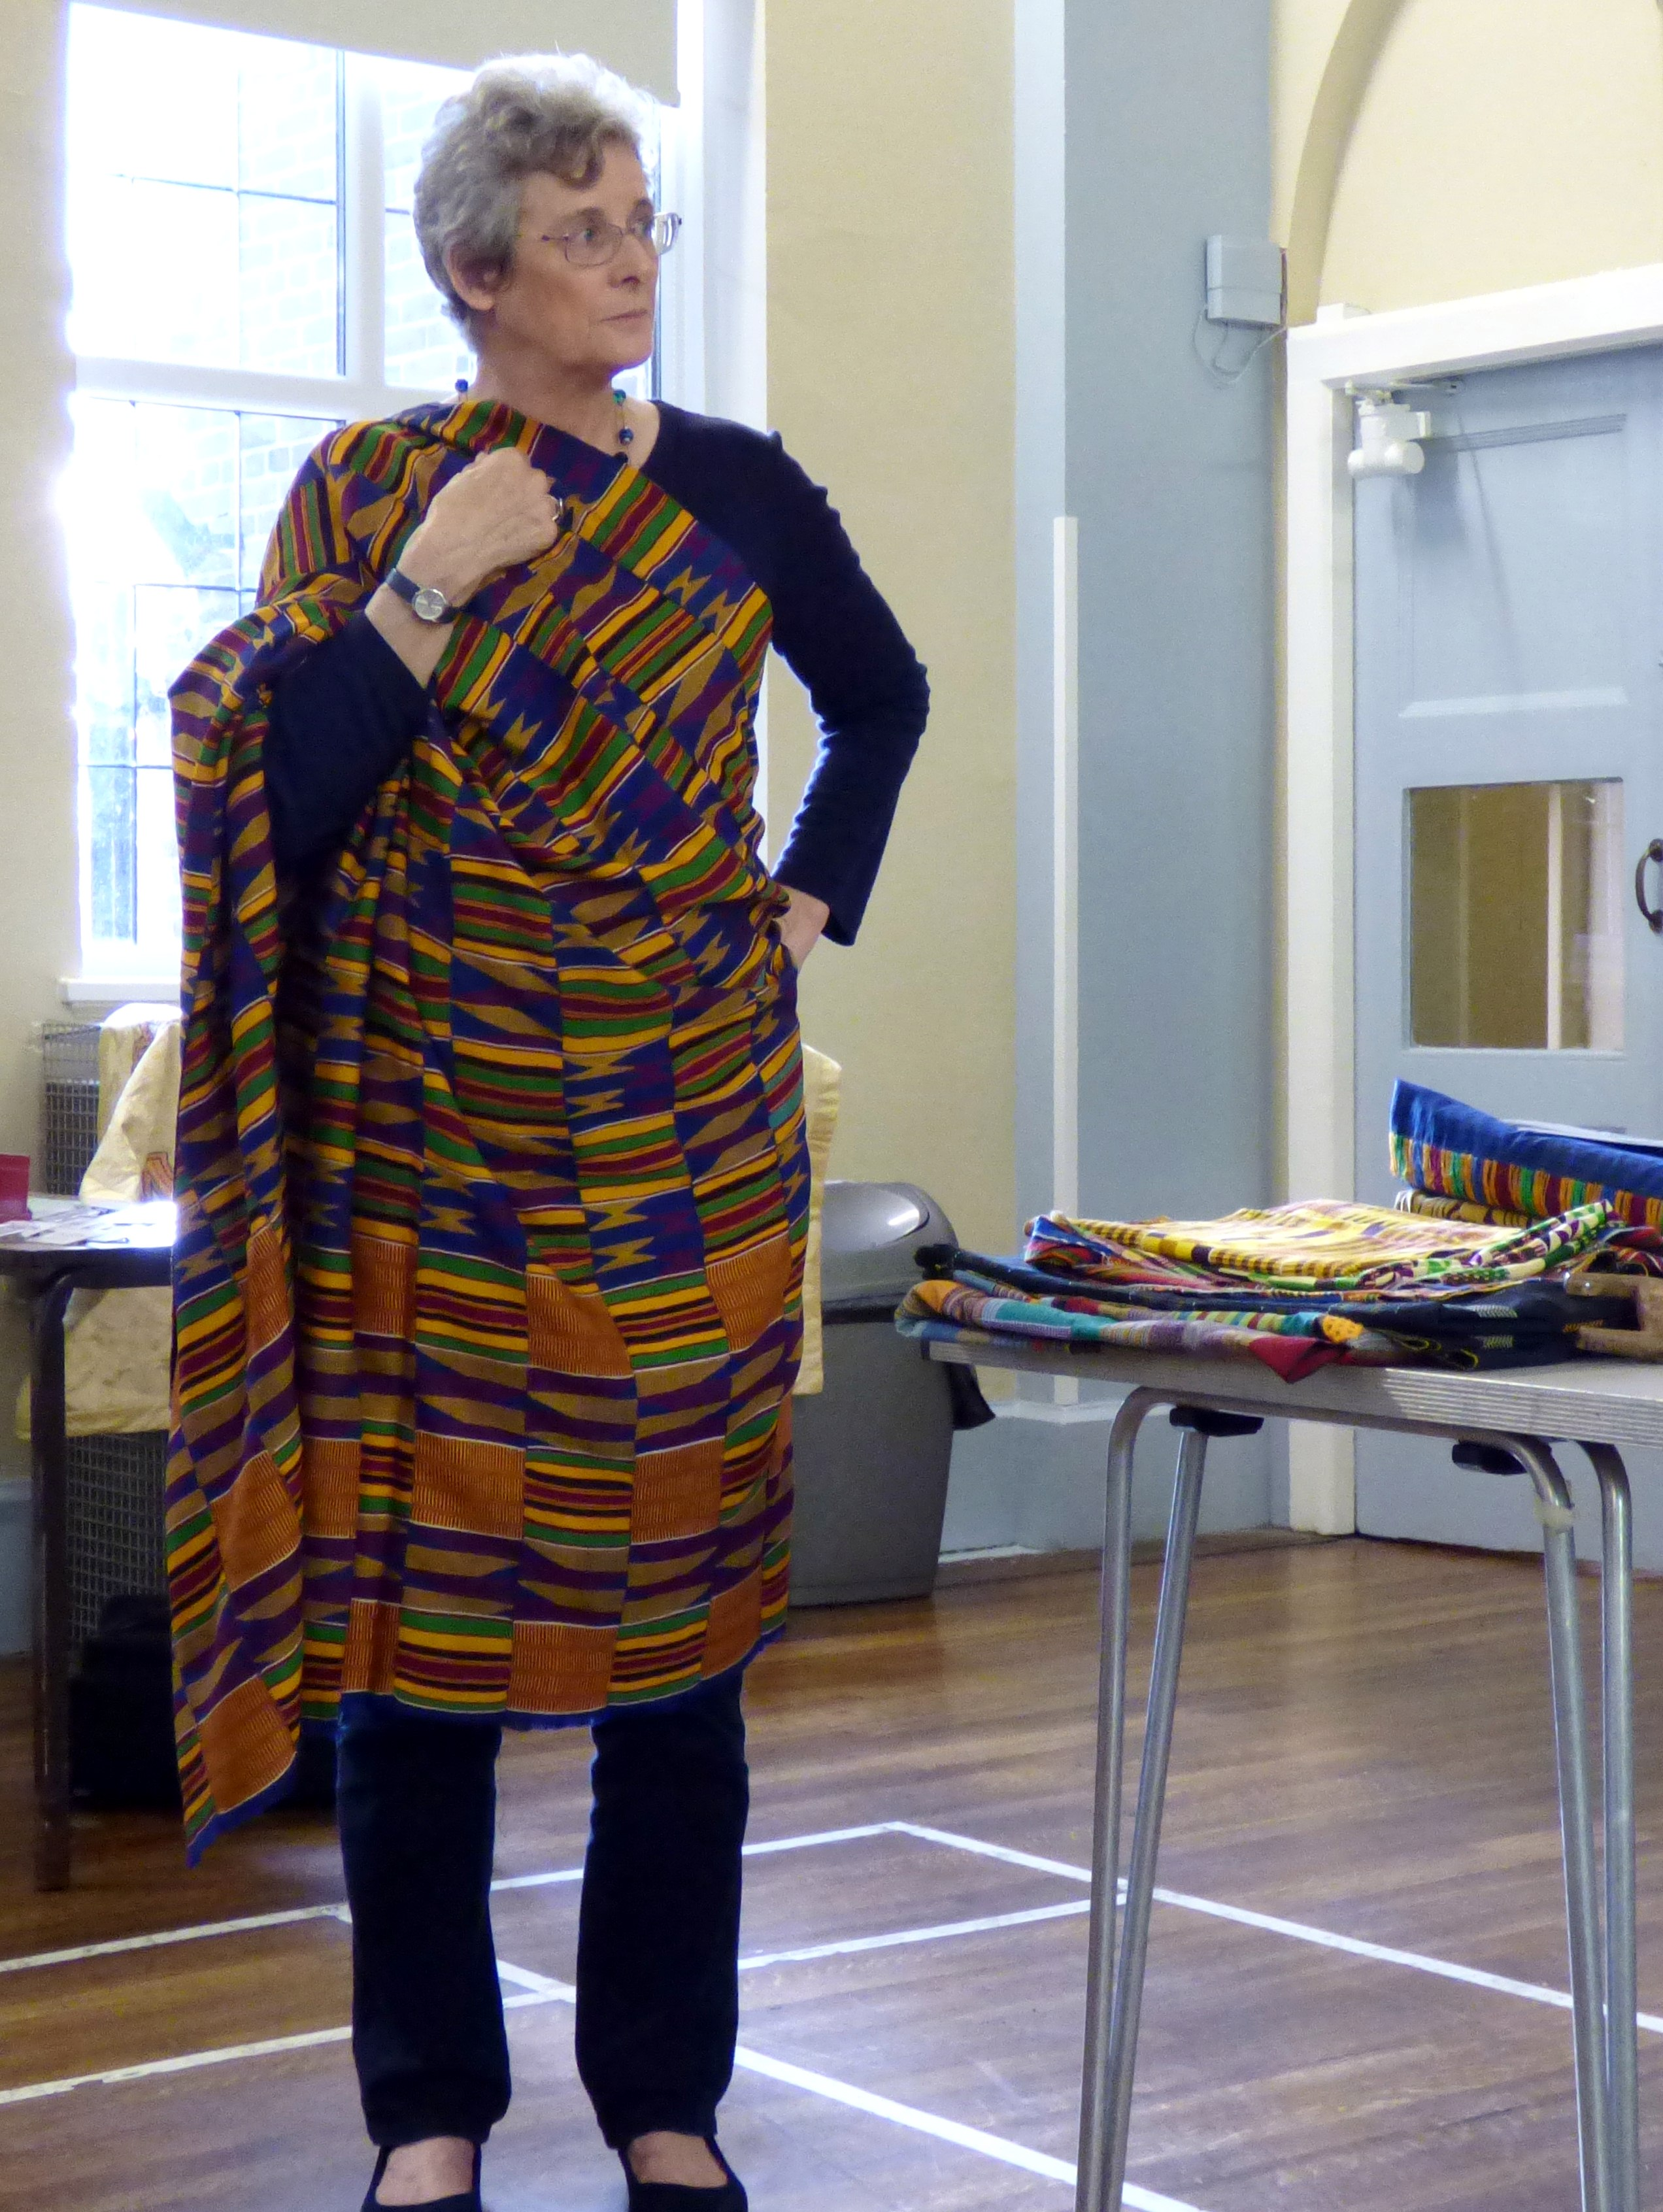 West African strip cloth shown by Magi Relph and modelled by Kim Parkman